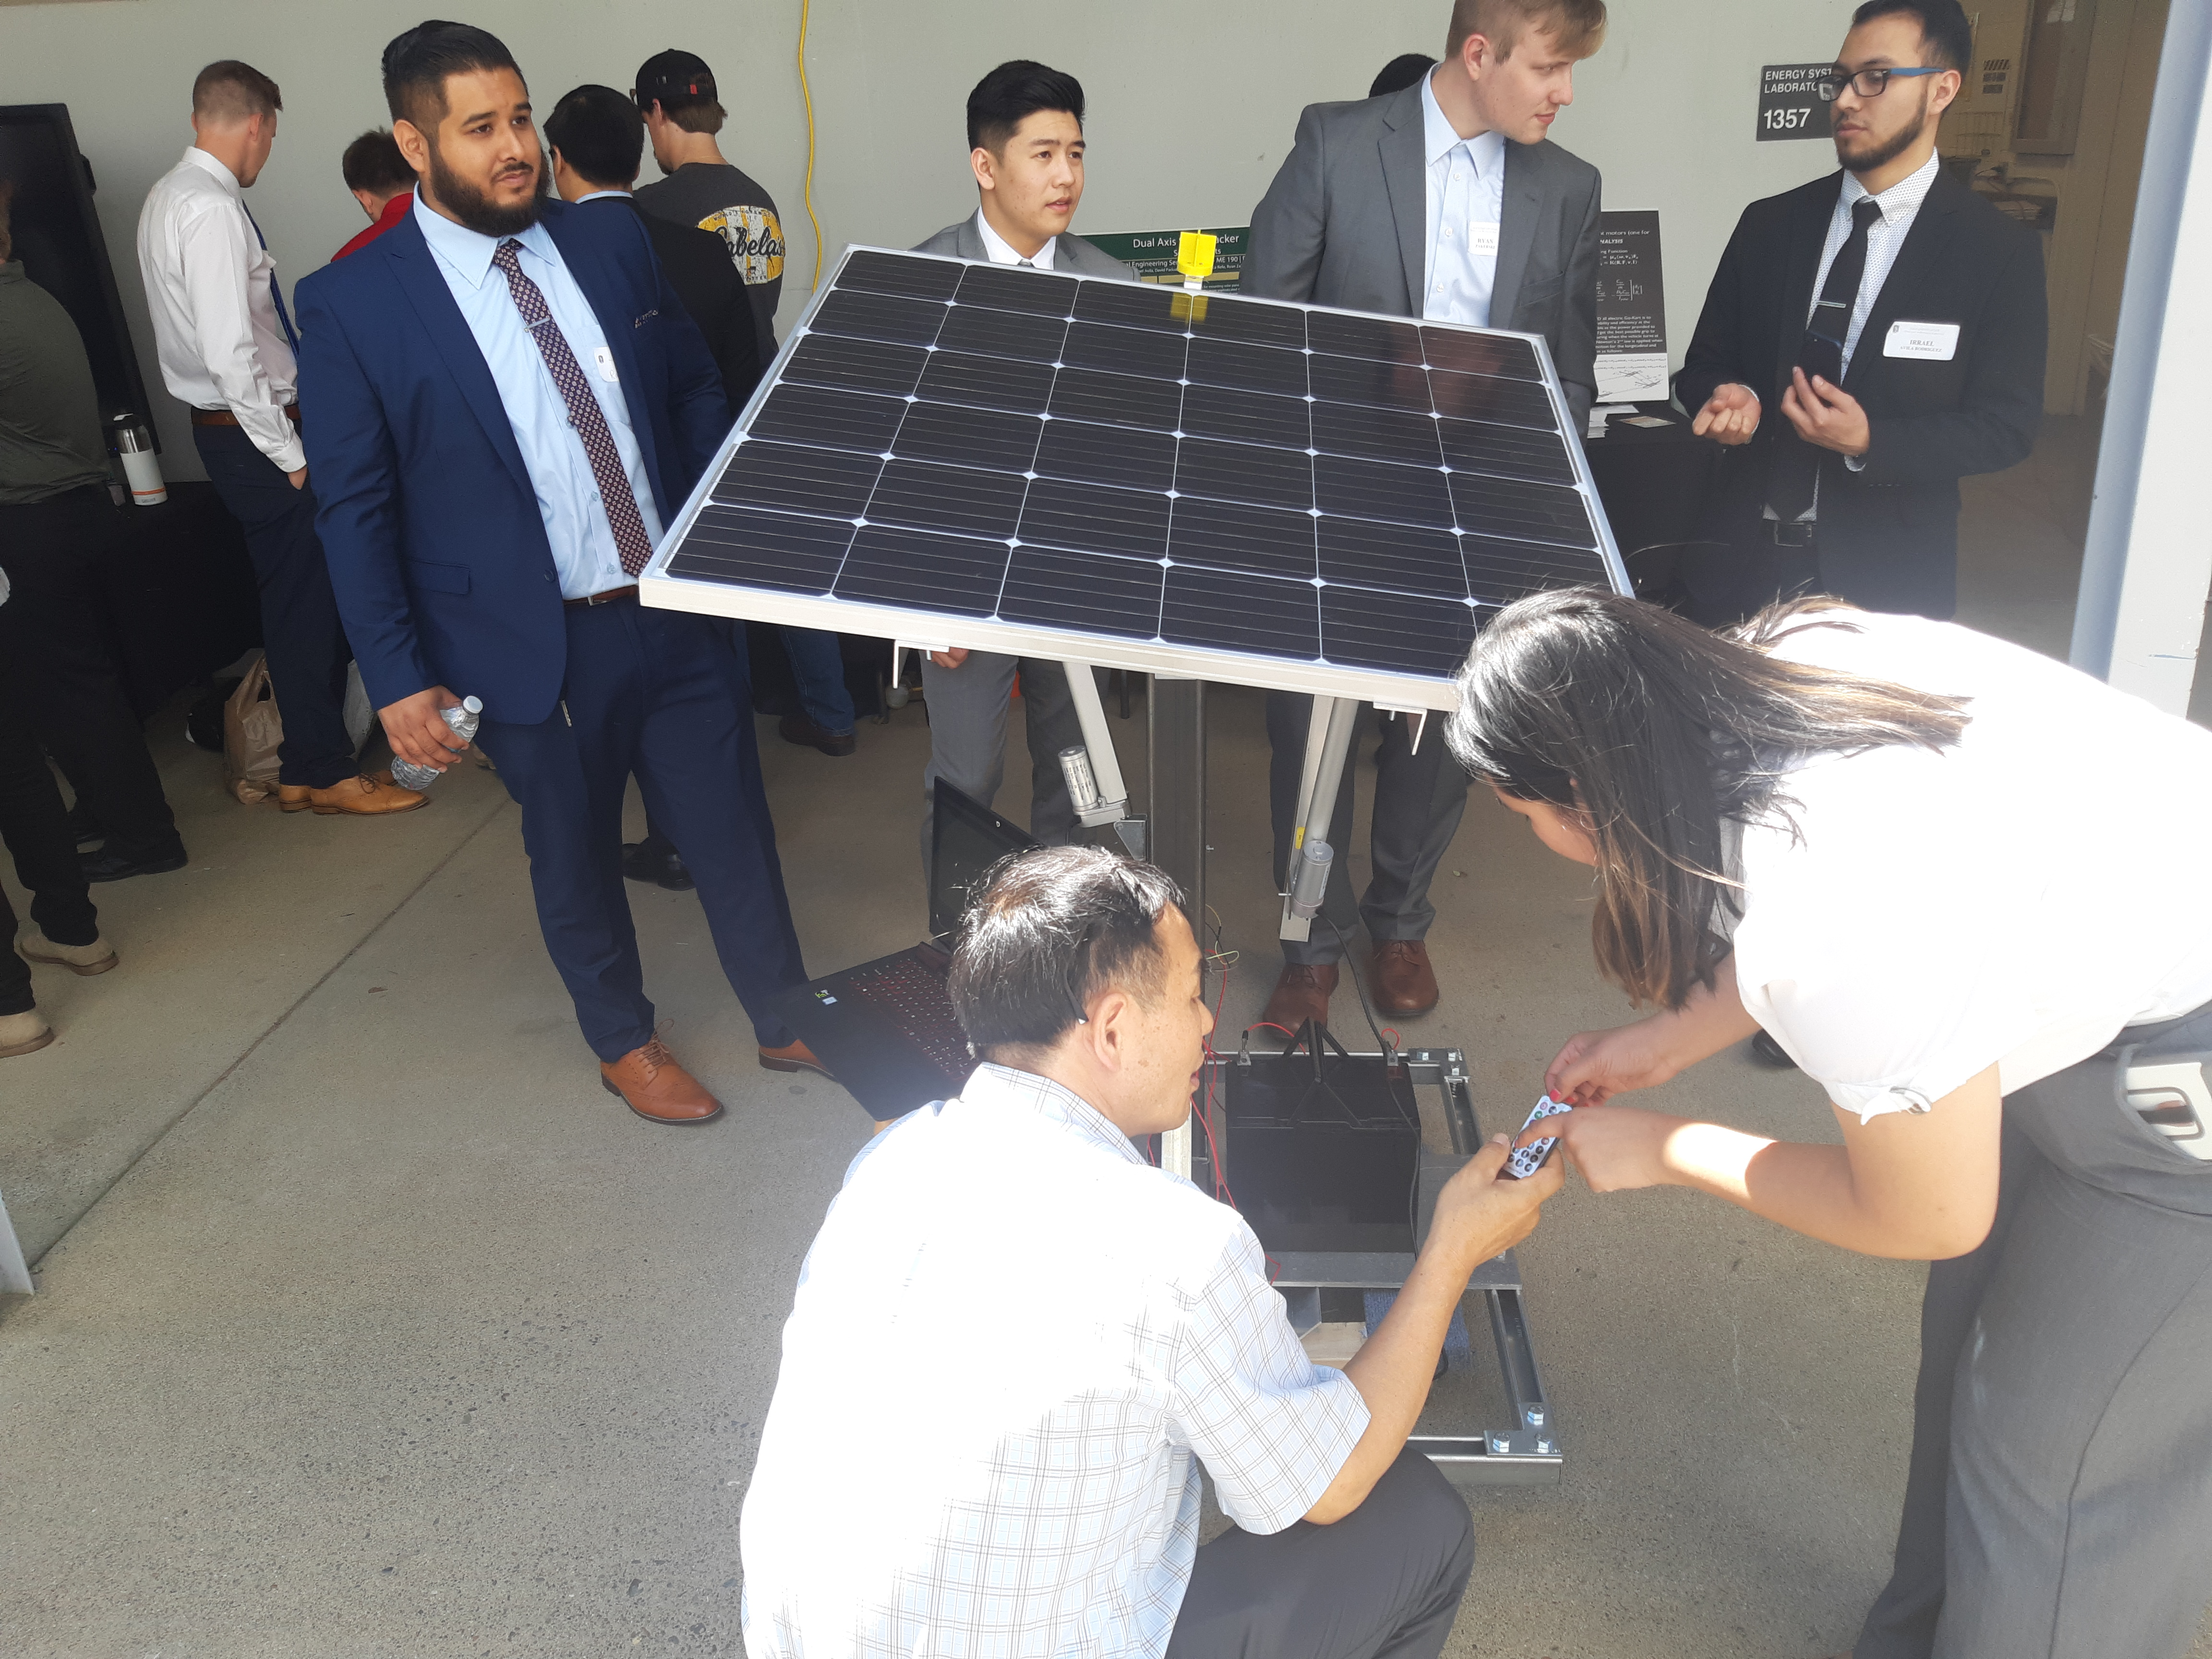 Sac State Engineering Solar Project